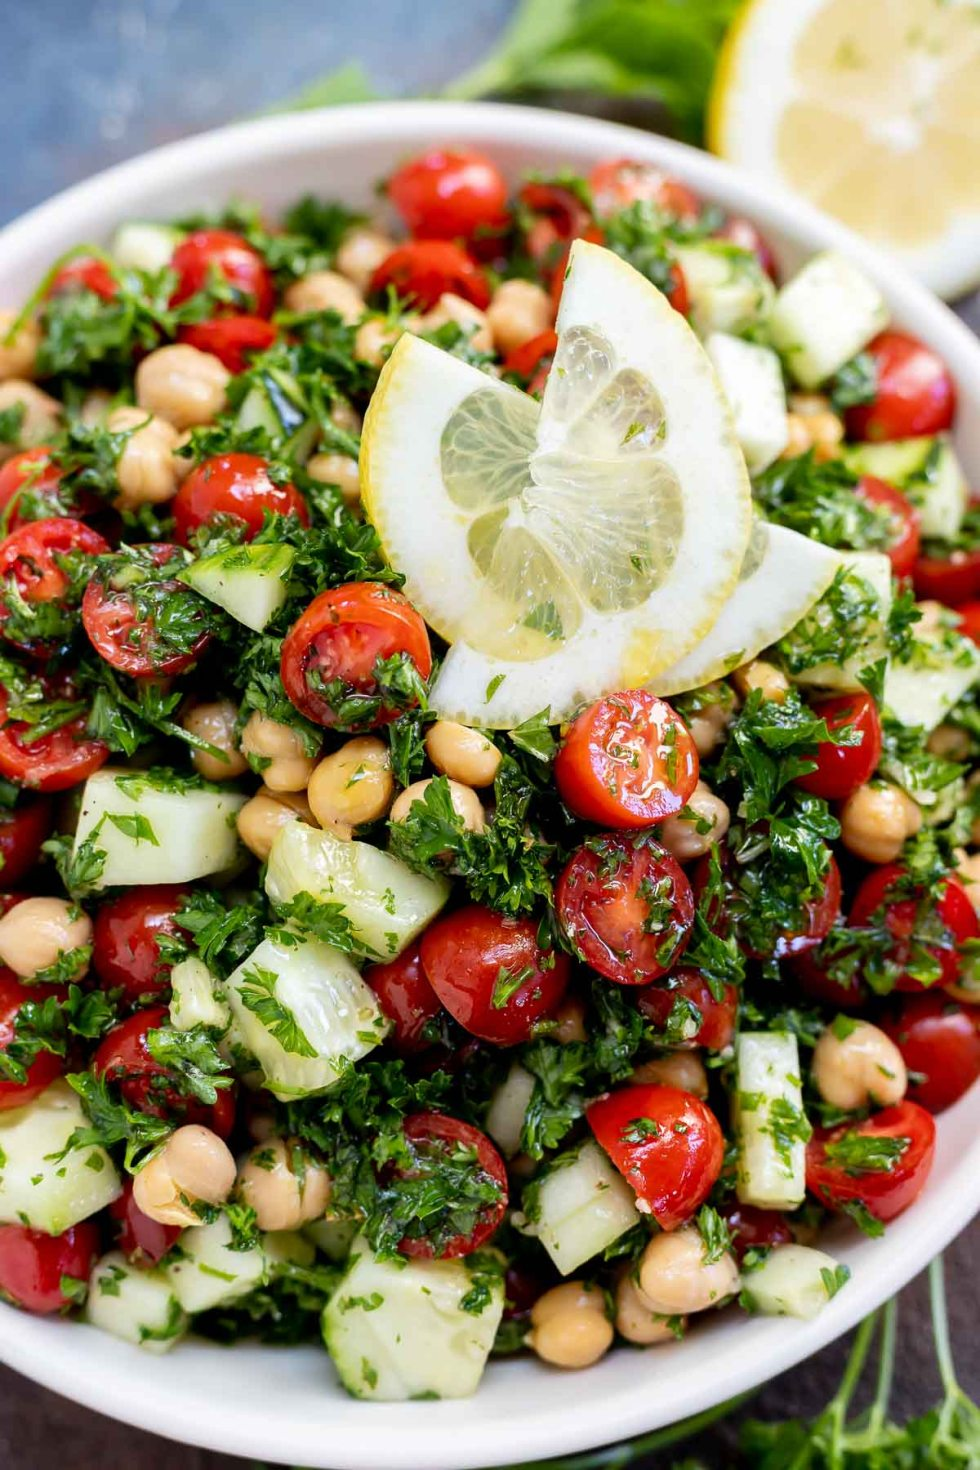 white serving bowl filled with chickpeas, tomatoes, cucumbers and herbs topped with lemon slices